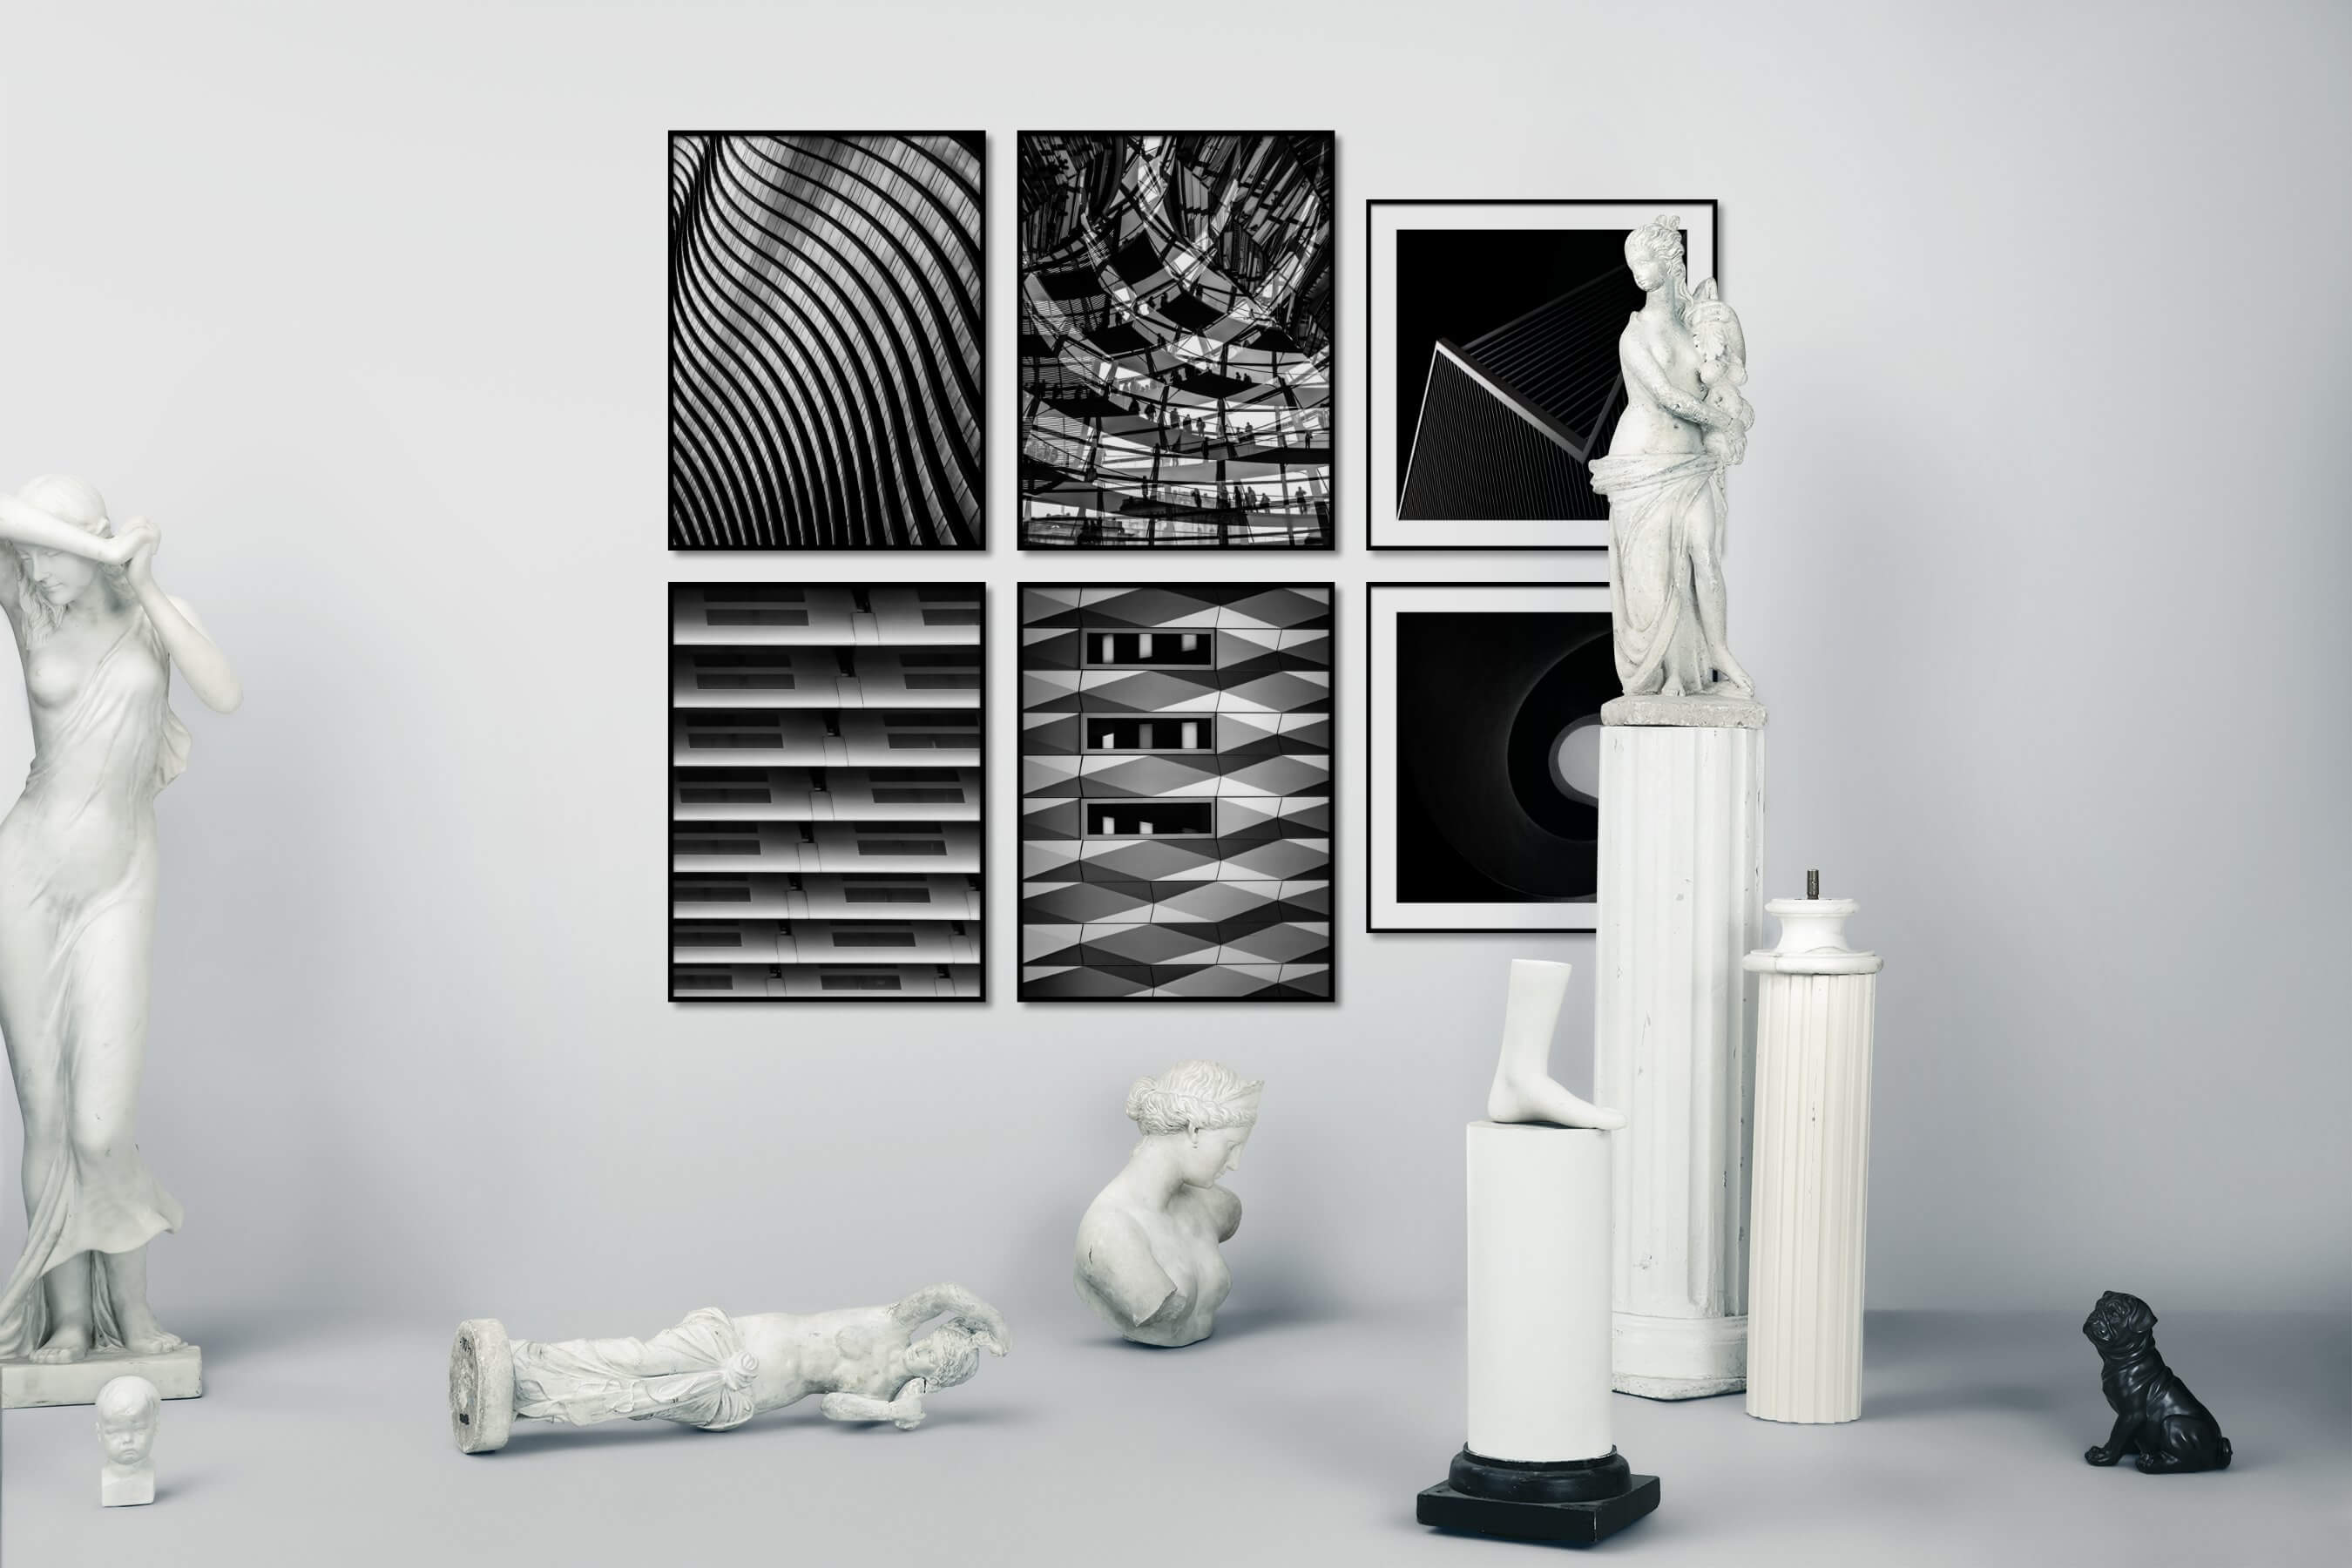 Gallery wall idea with six framed pictures arranged on a wall depicting Black & White, For the Maximalist, City Life, Dark Tones, and For the Minimalist